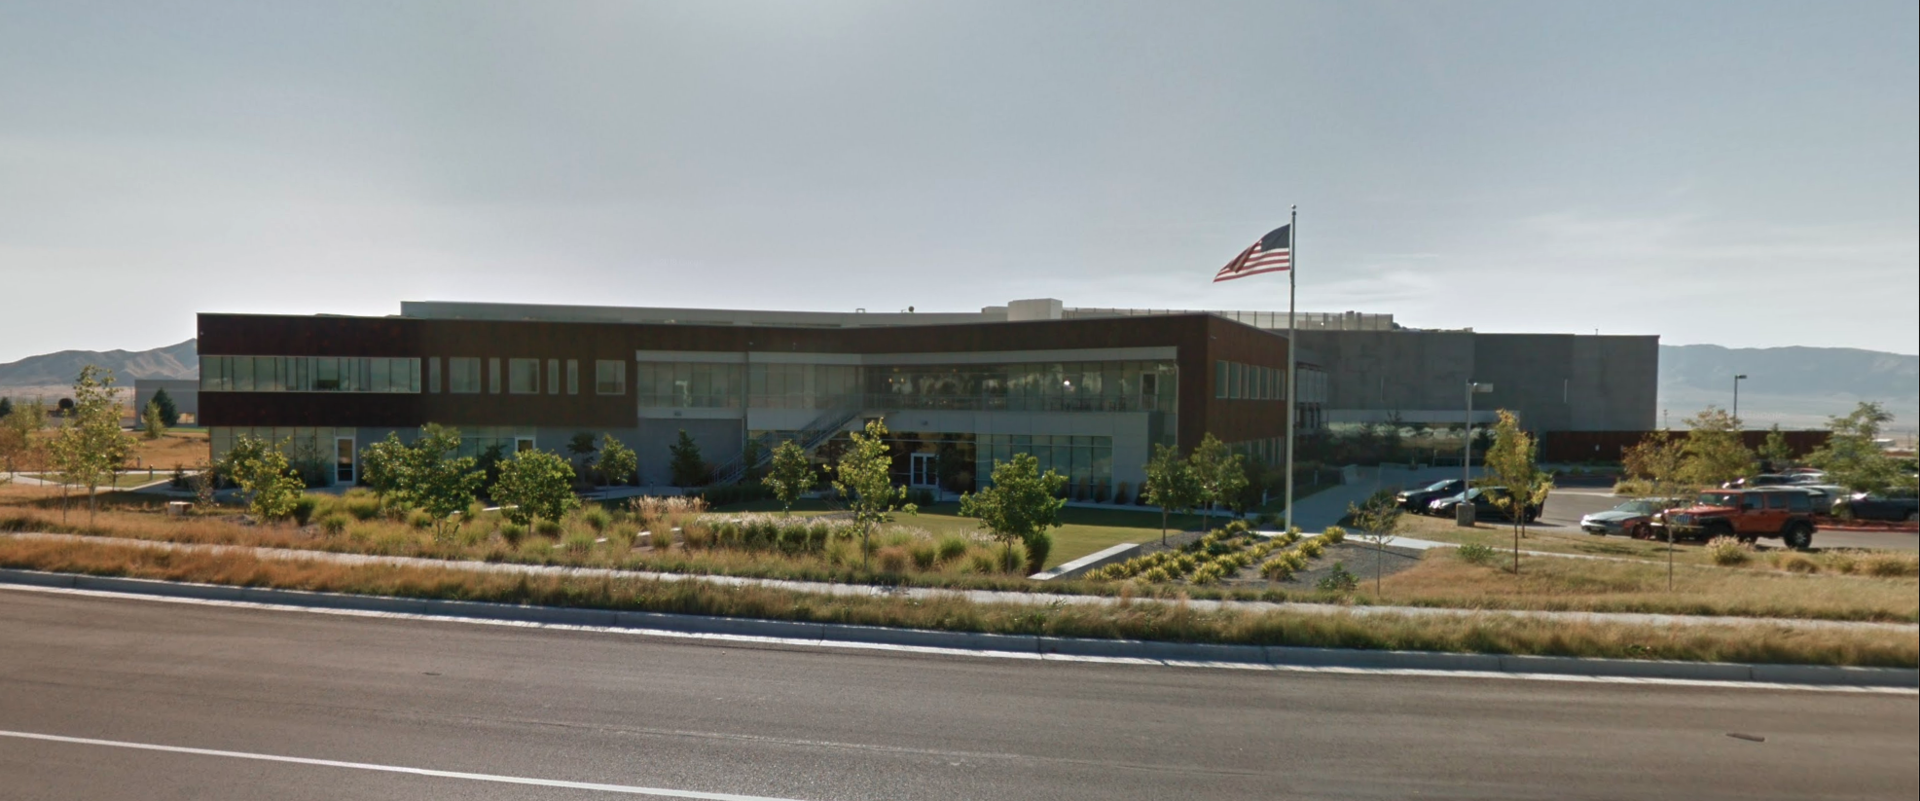 Photo of the Tooele Technical College